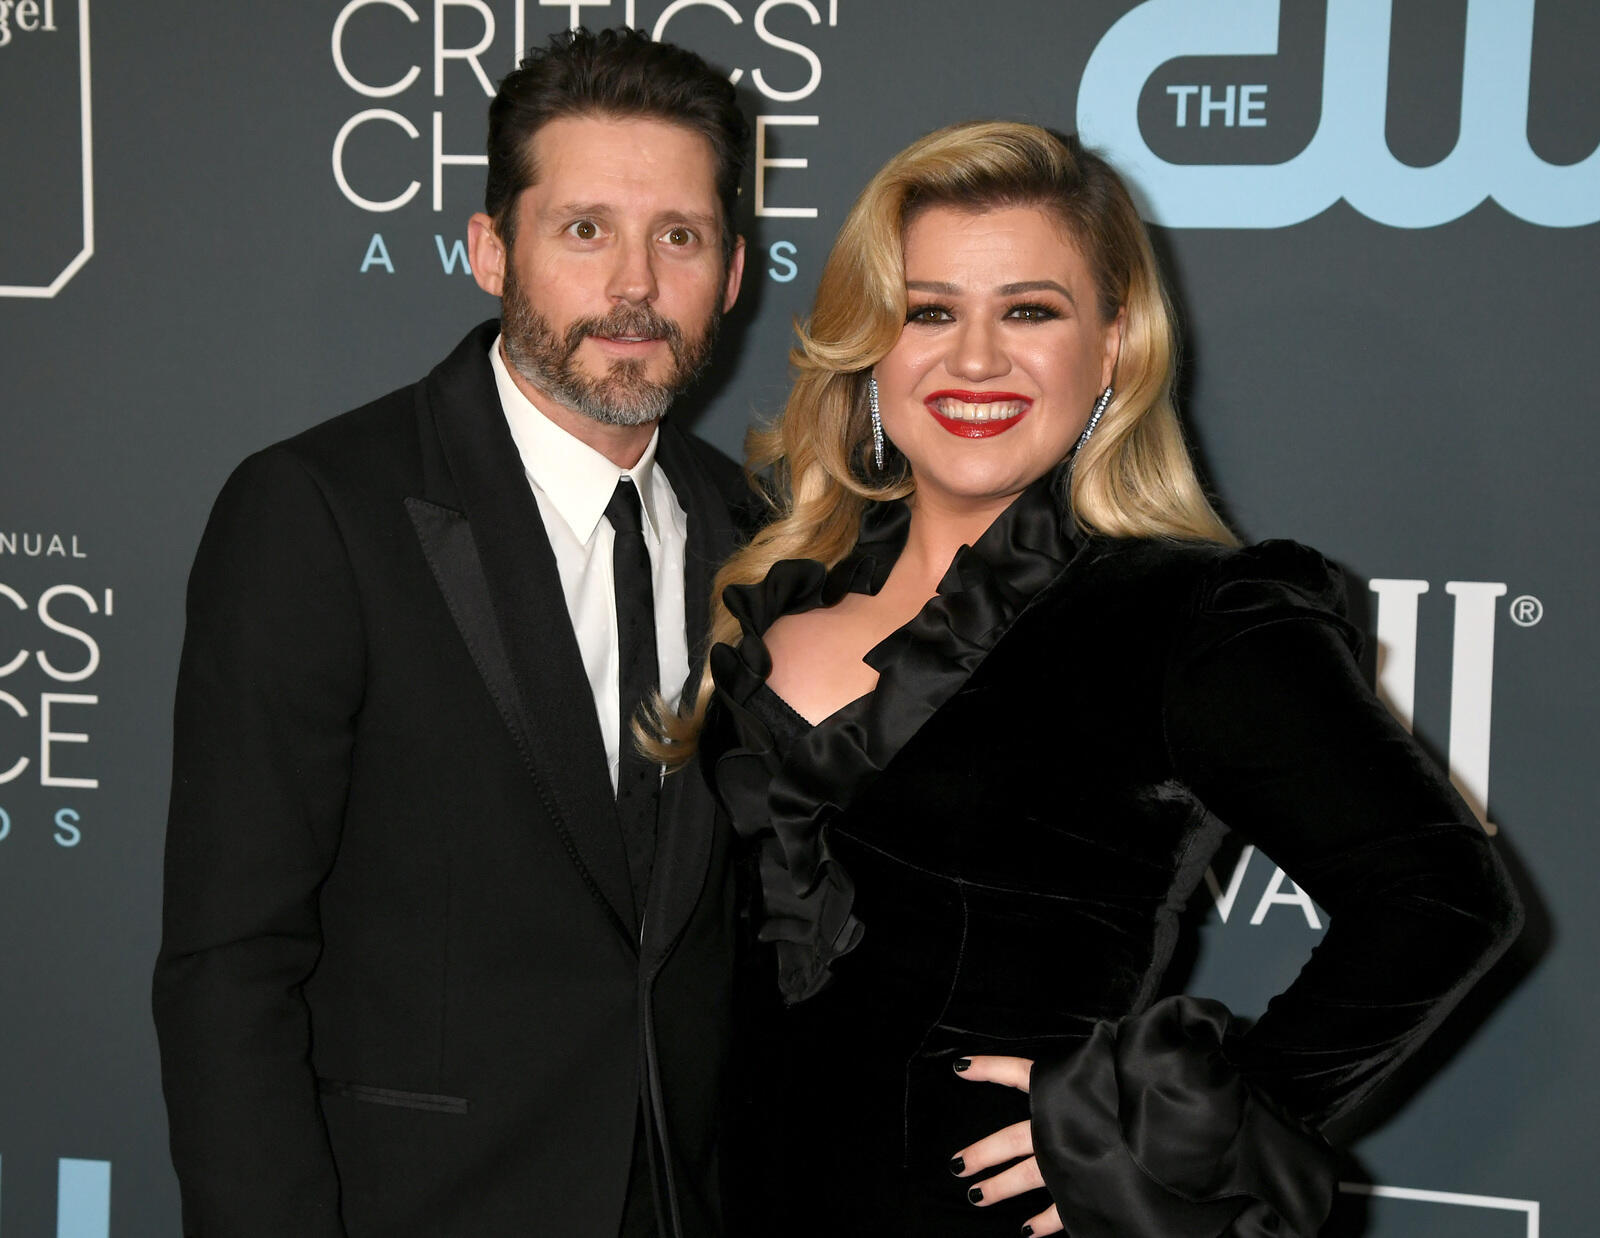 238: 07/28/21 - 'Because Of You,' Brandon Blackstock, Kelly Clarkson Has To Dish Out Nearly $200K A Month In Spousal Support